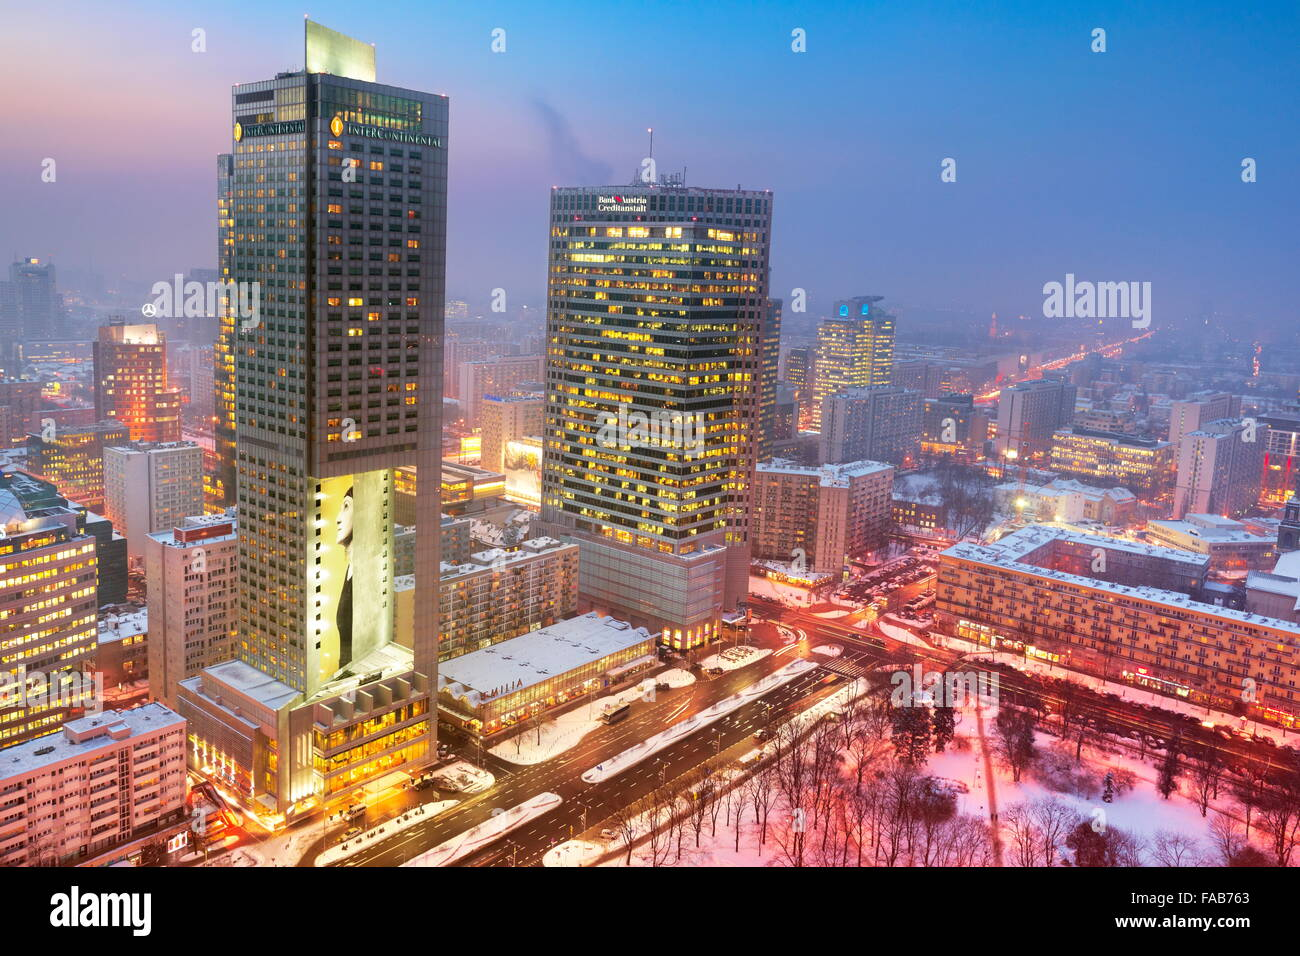 Warsaw skyline - view to the commercial district,  Poland Stock Photo